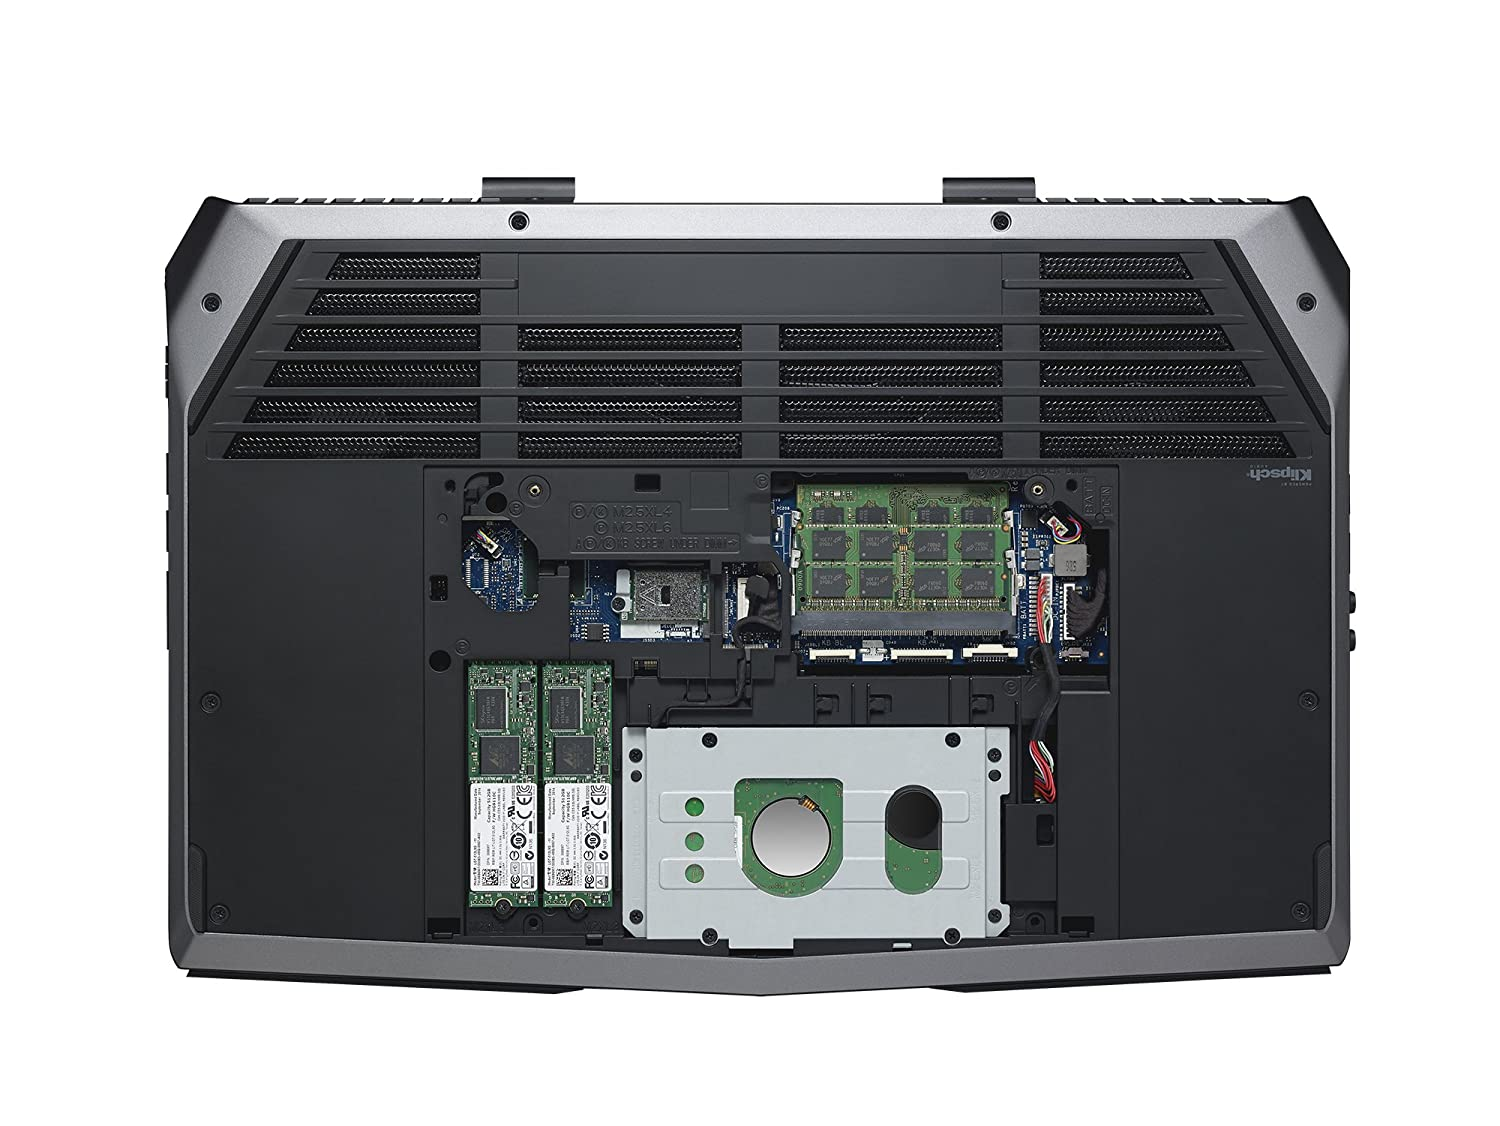 Alienware Aw15r2 6161slv 156 Inch Fhd Laptop 6th Dell M15x Power Button Circuit Board With Cable W 1 Year Generation Intel Core I7 16 Gb Ram Tb Hdd 256 Sata Ssdnvidia Geforce Gtx 970m